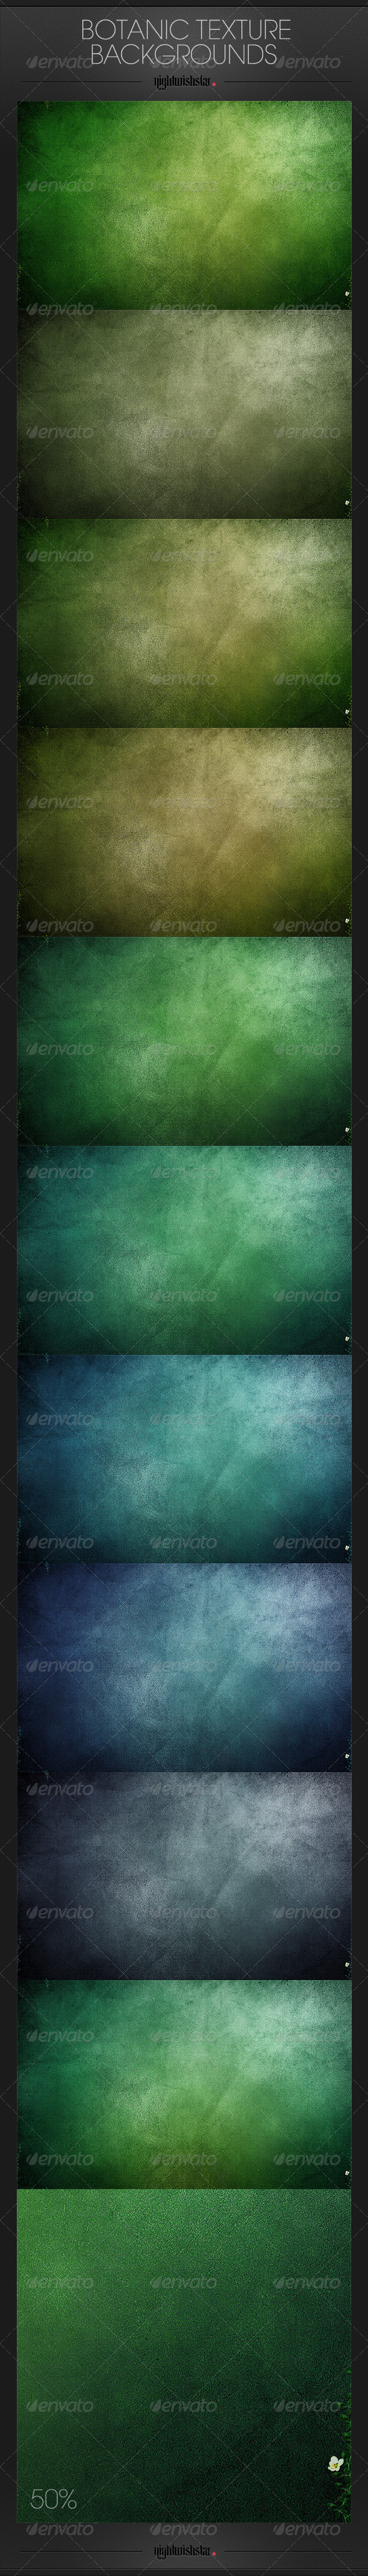 GraphicRiver Botanic Texture Backgrounds 6549231